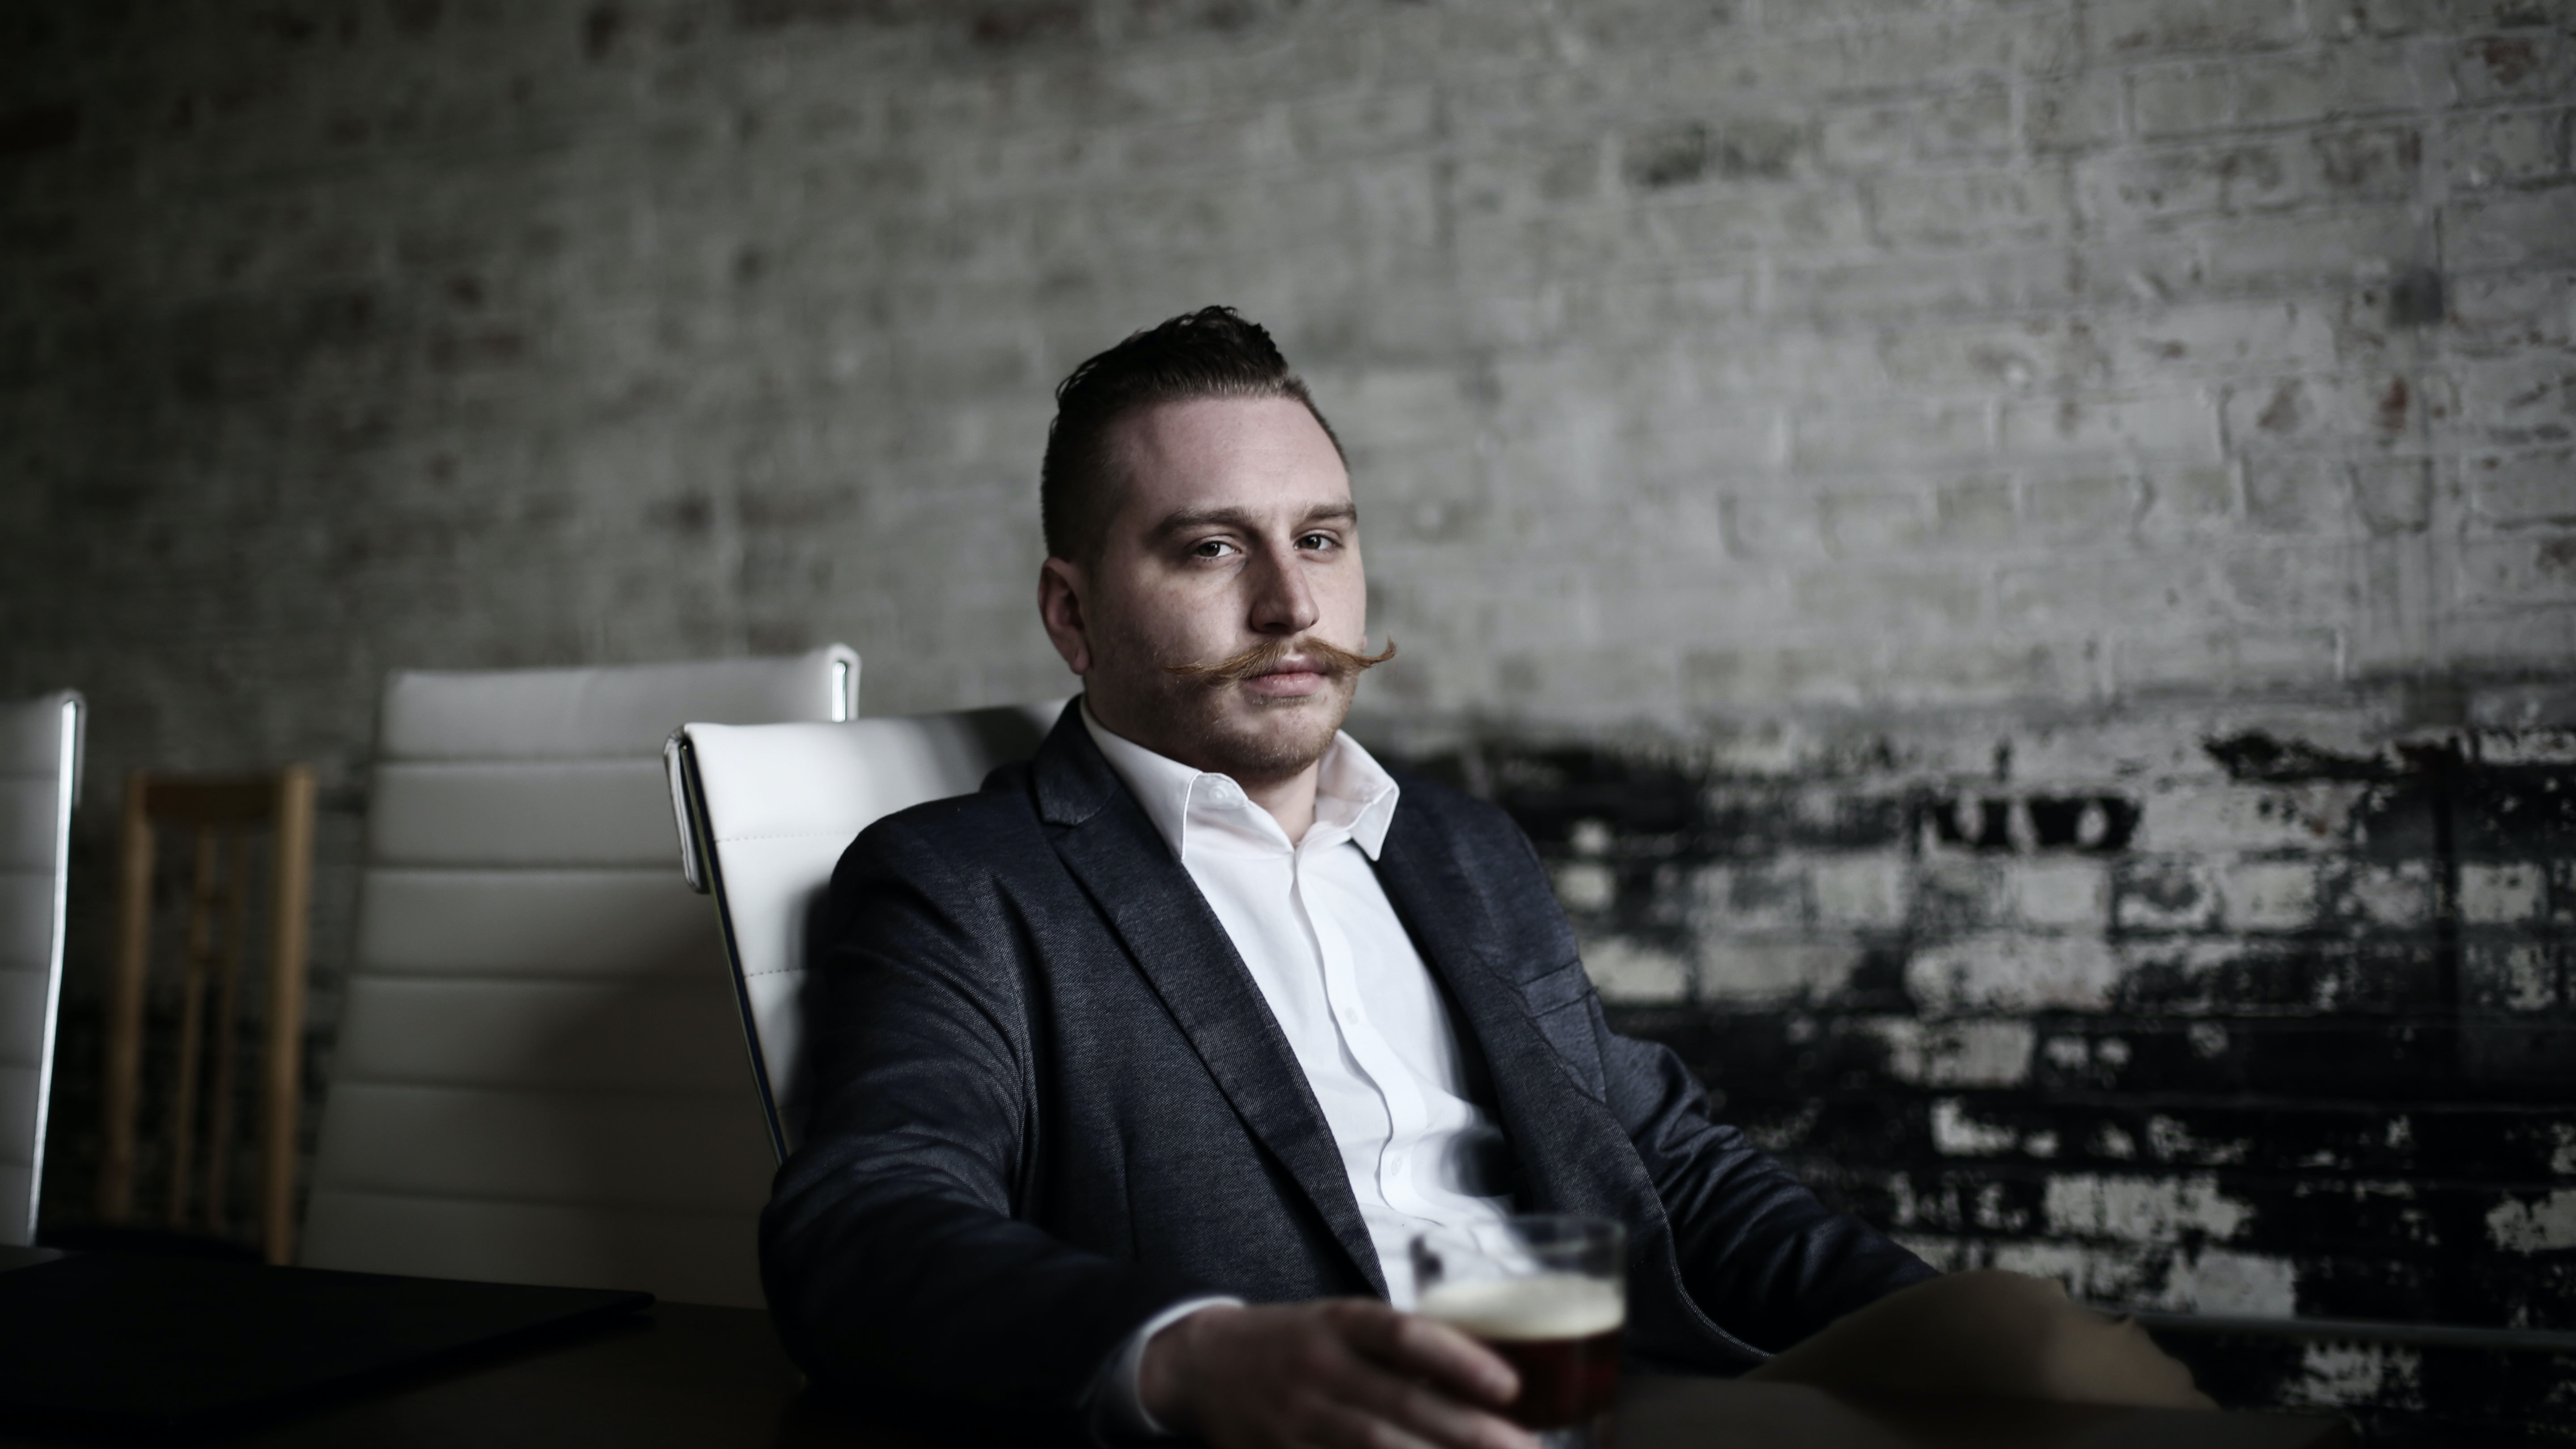 Hipster businessman with a mustace sitting in an office chair